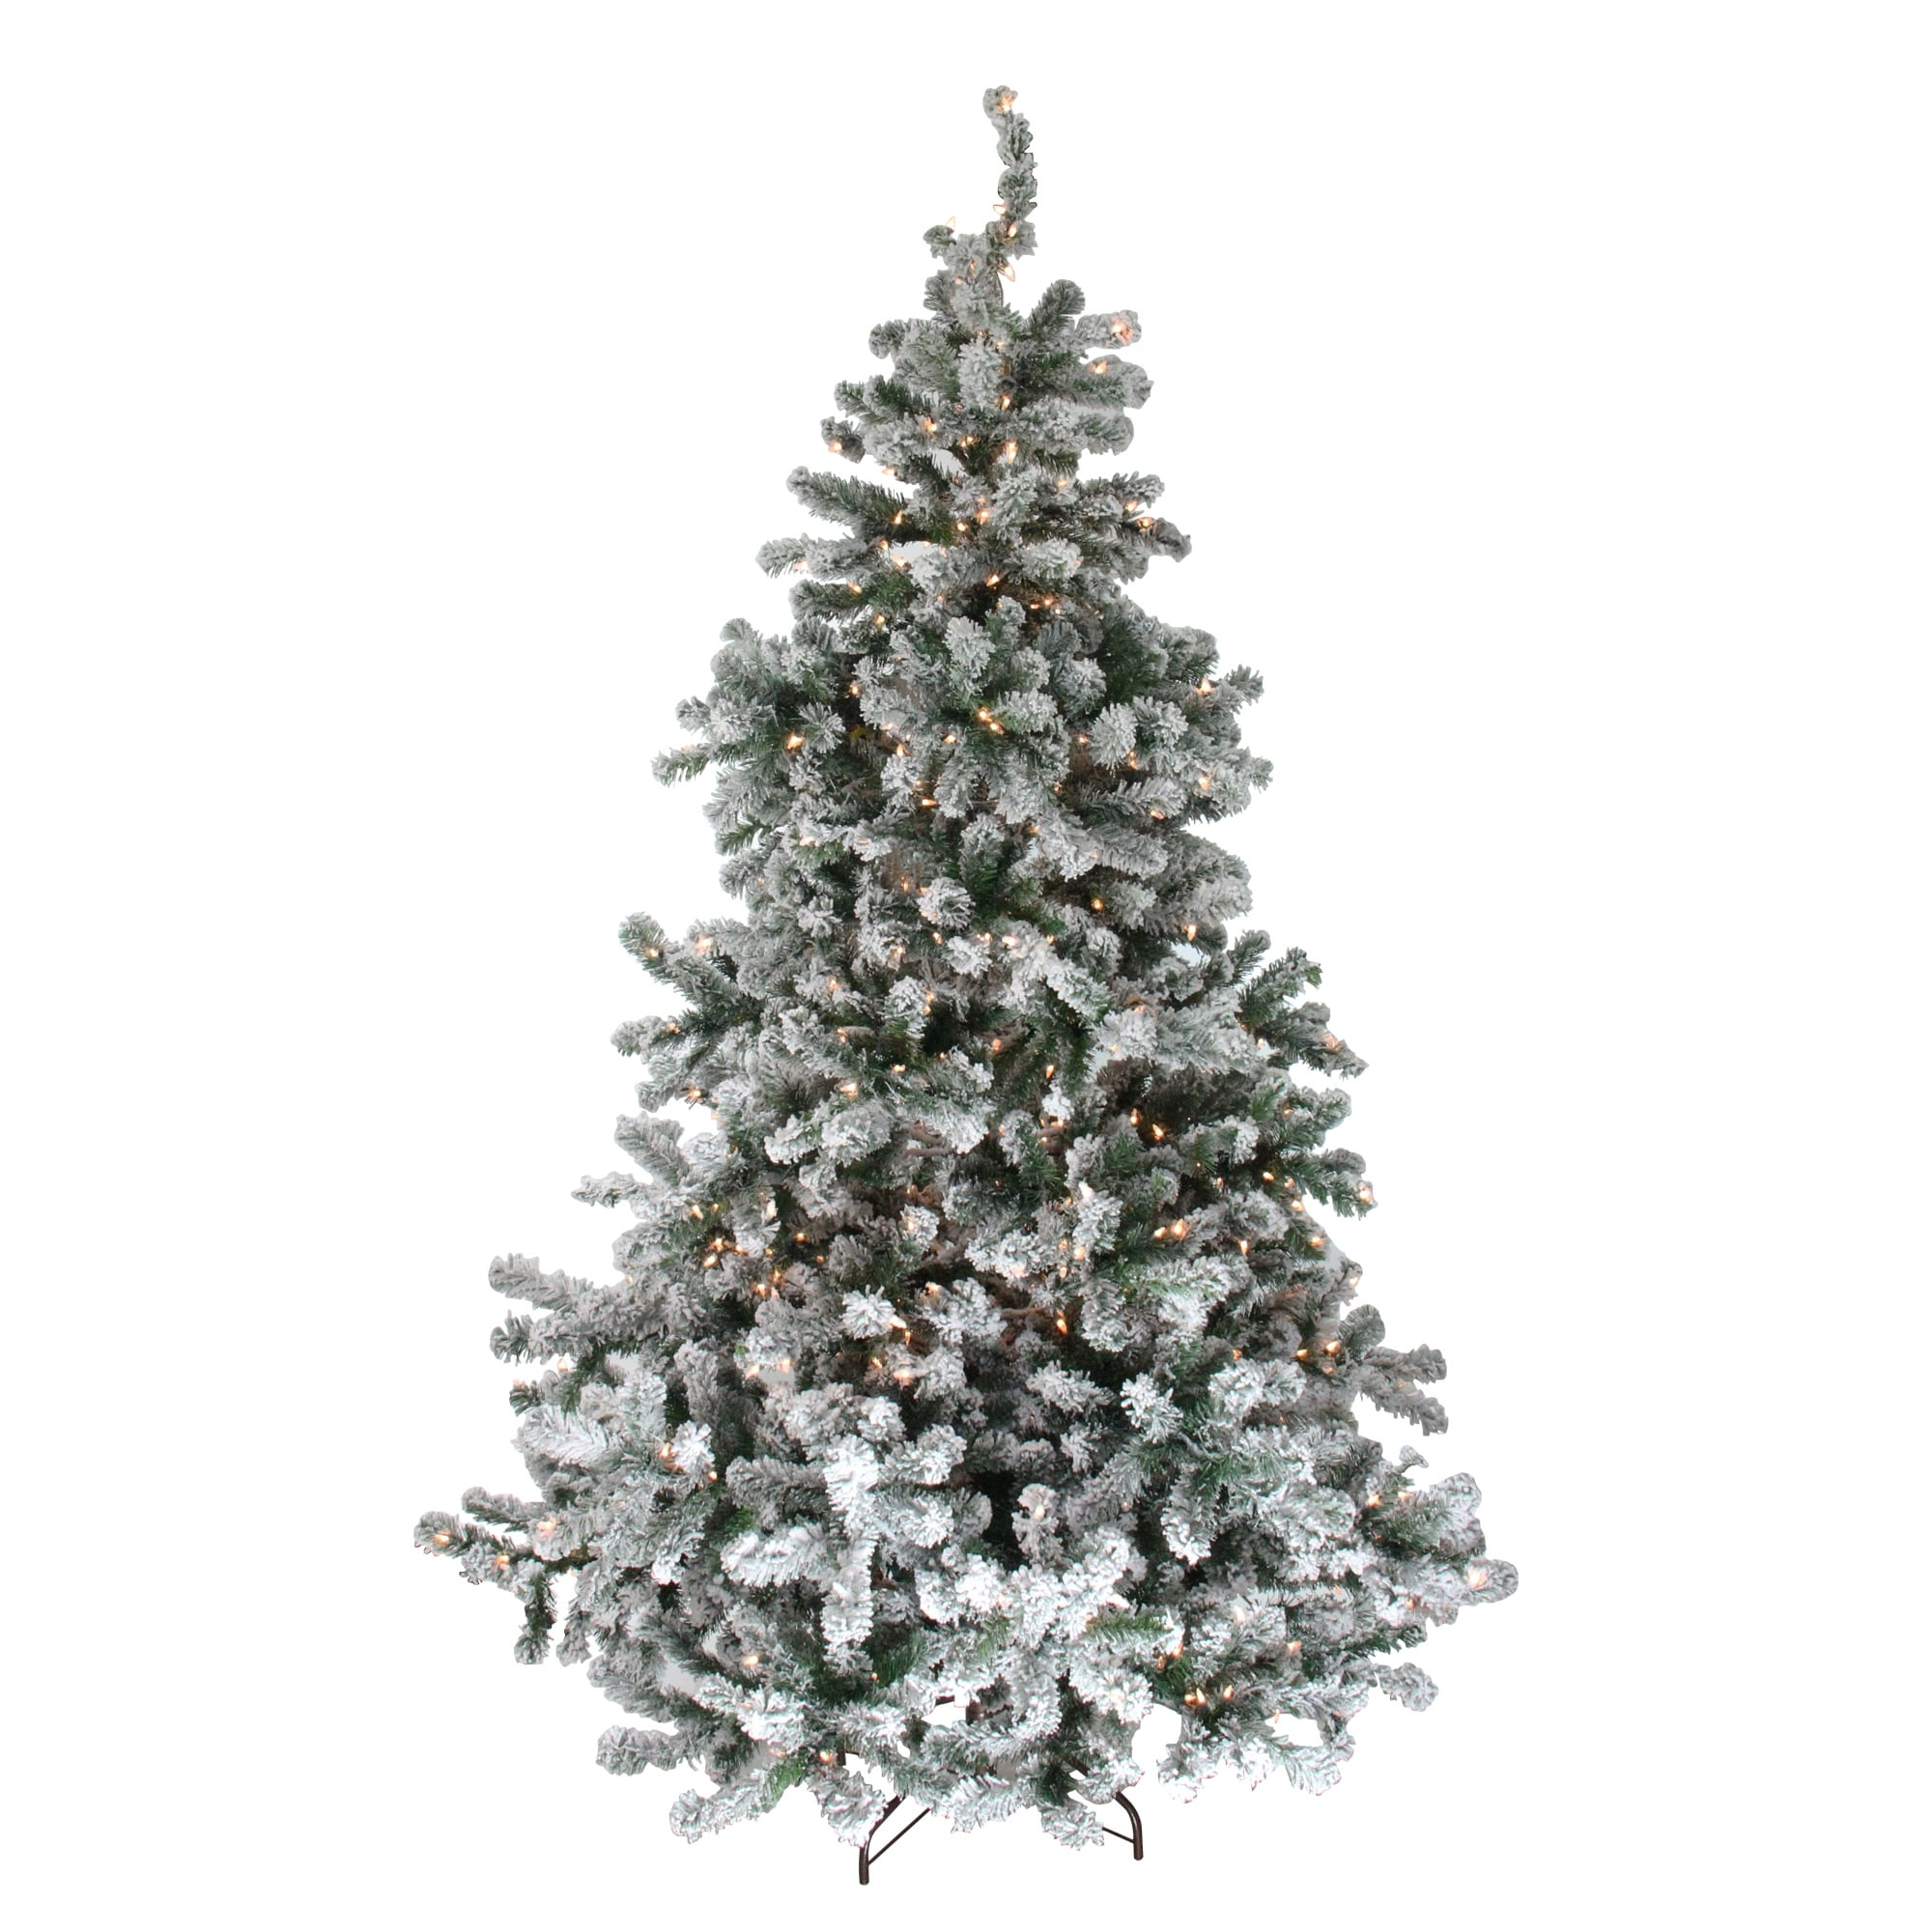 Flocked Pre Lit Christmas Tree.6 5 Pre Lit Flocked Natural Emerald Artificial Christmas Tree Clear Lights 6 To 7 Feet